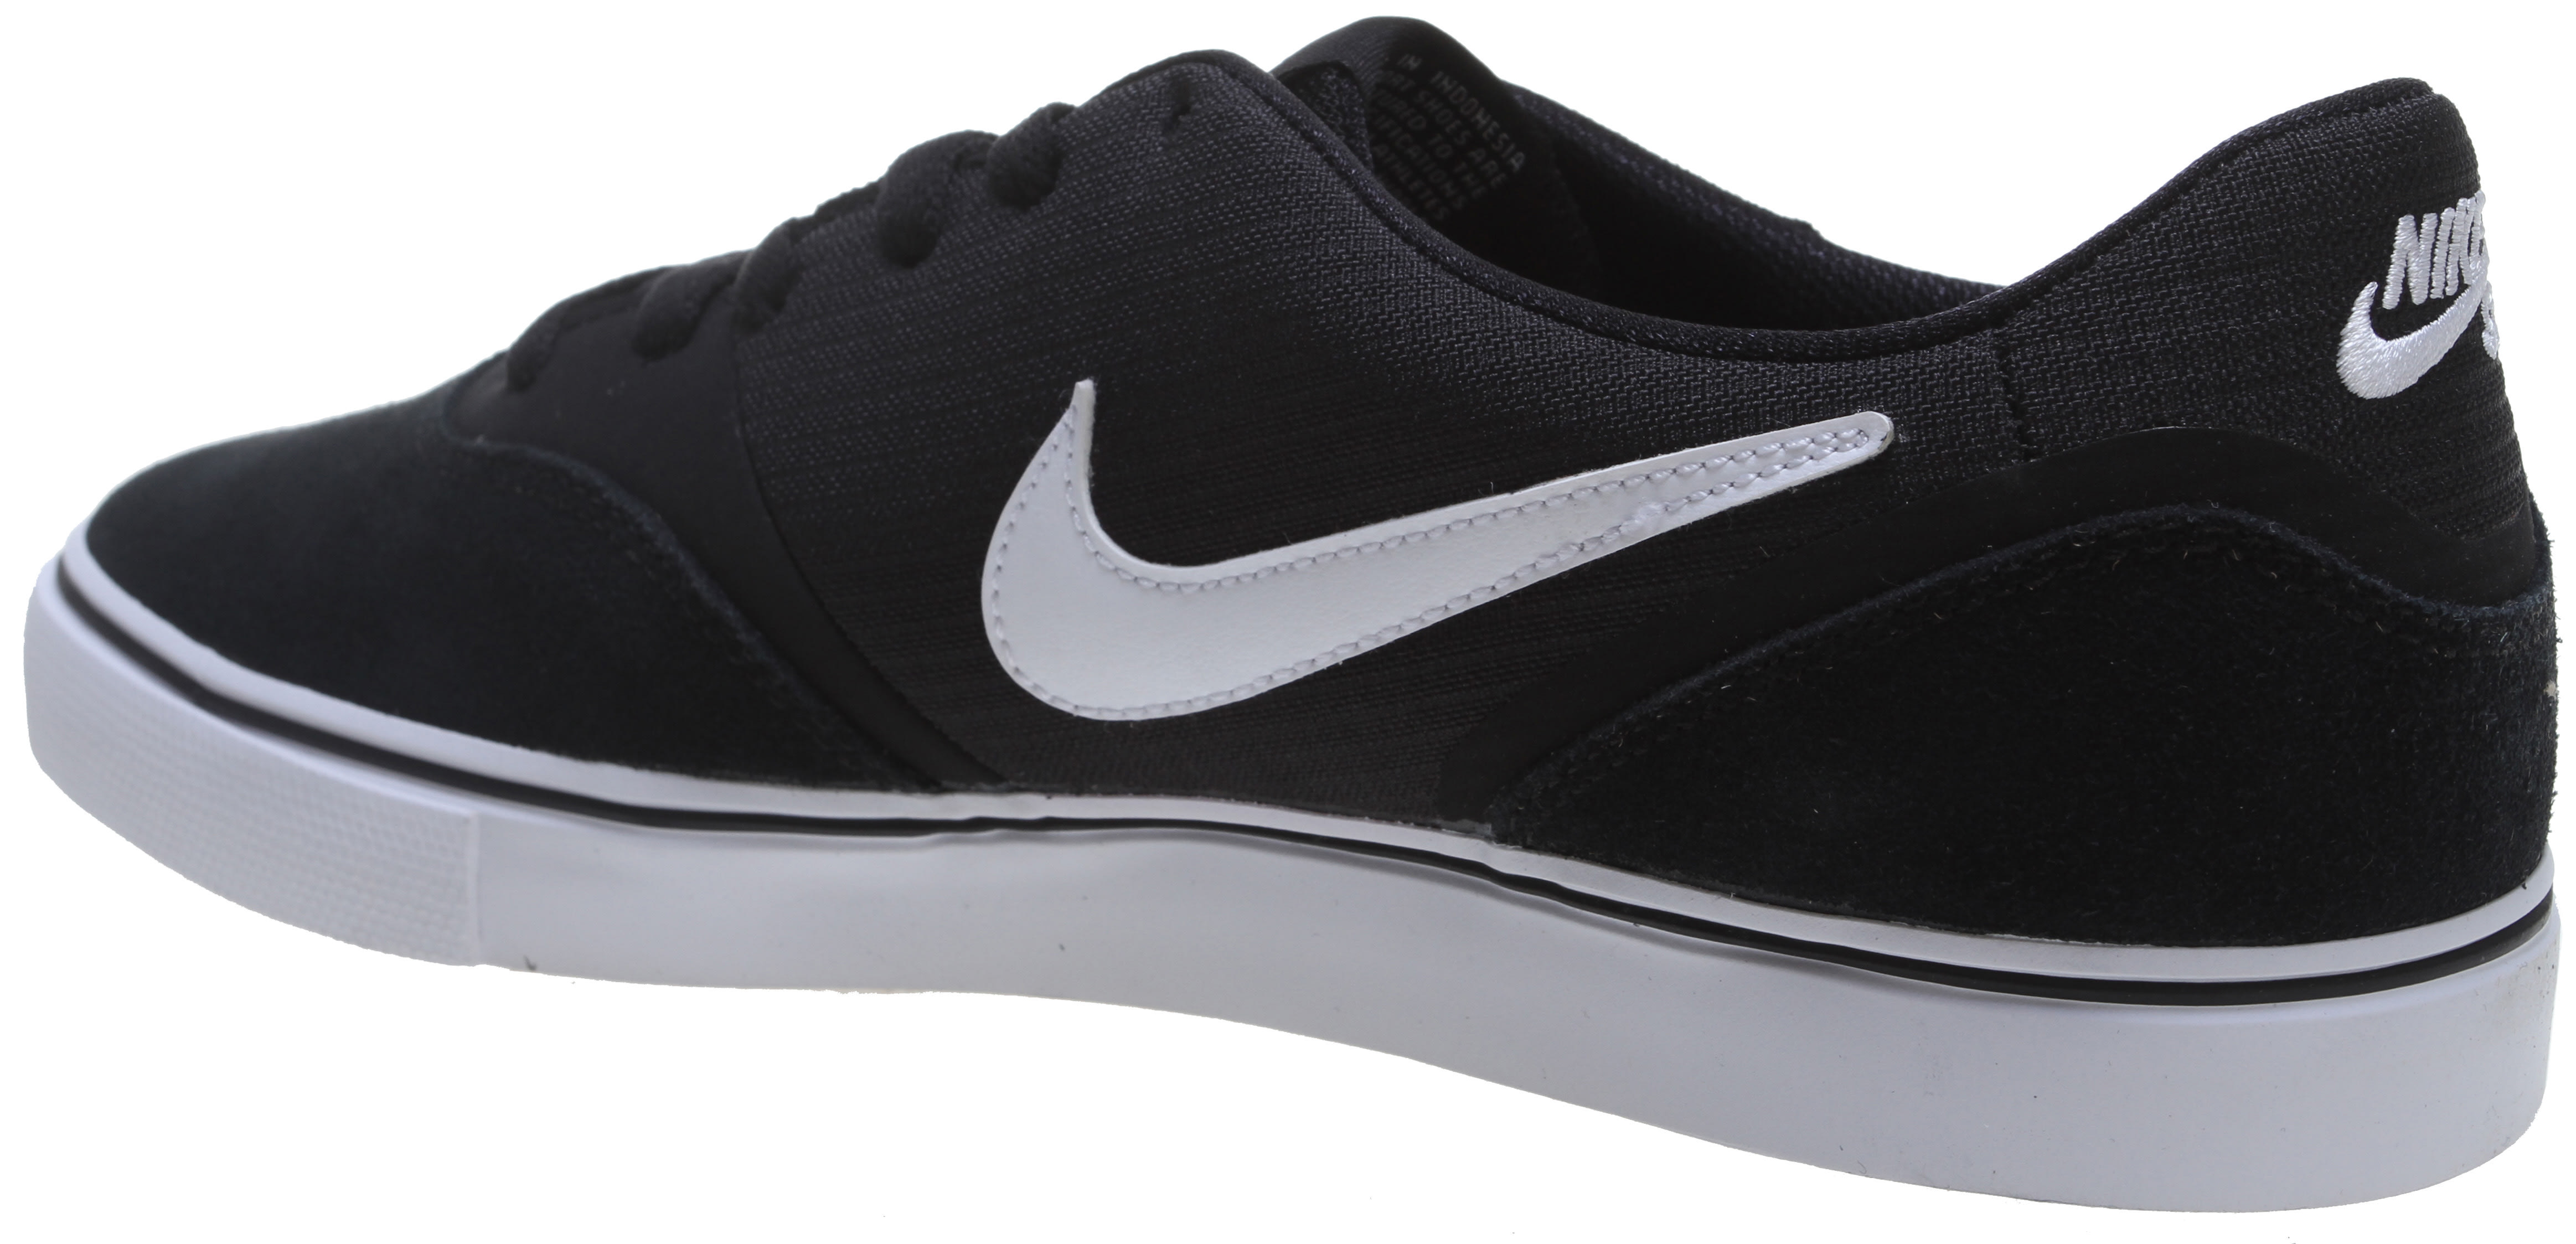 a82e182d21608c Nike Paul Rodriguez 9 VR Skate Shoes - thumbnail 3